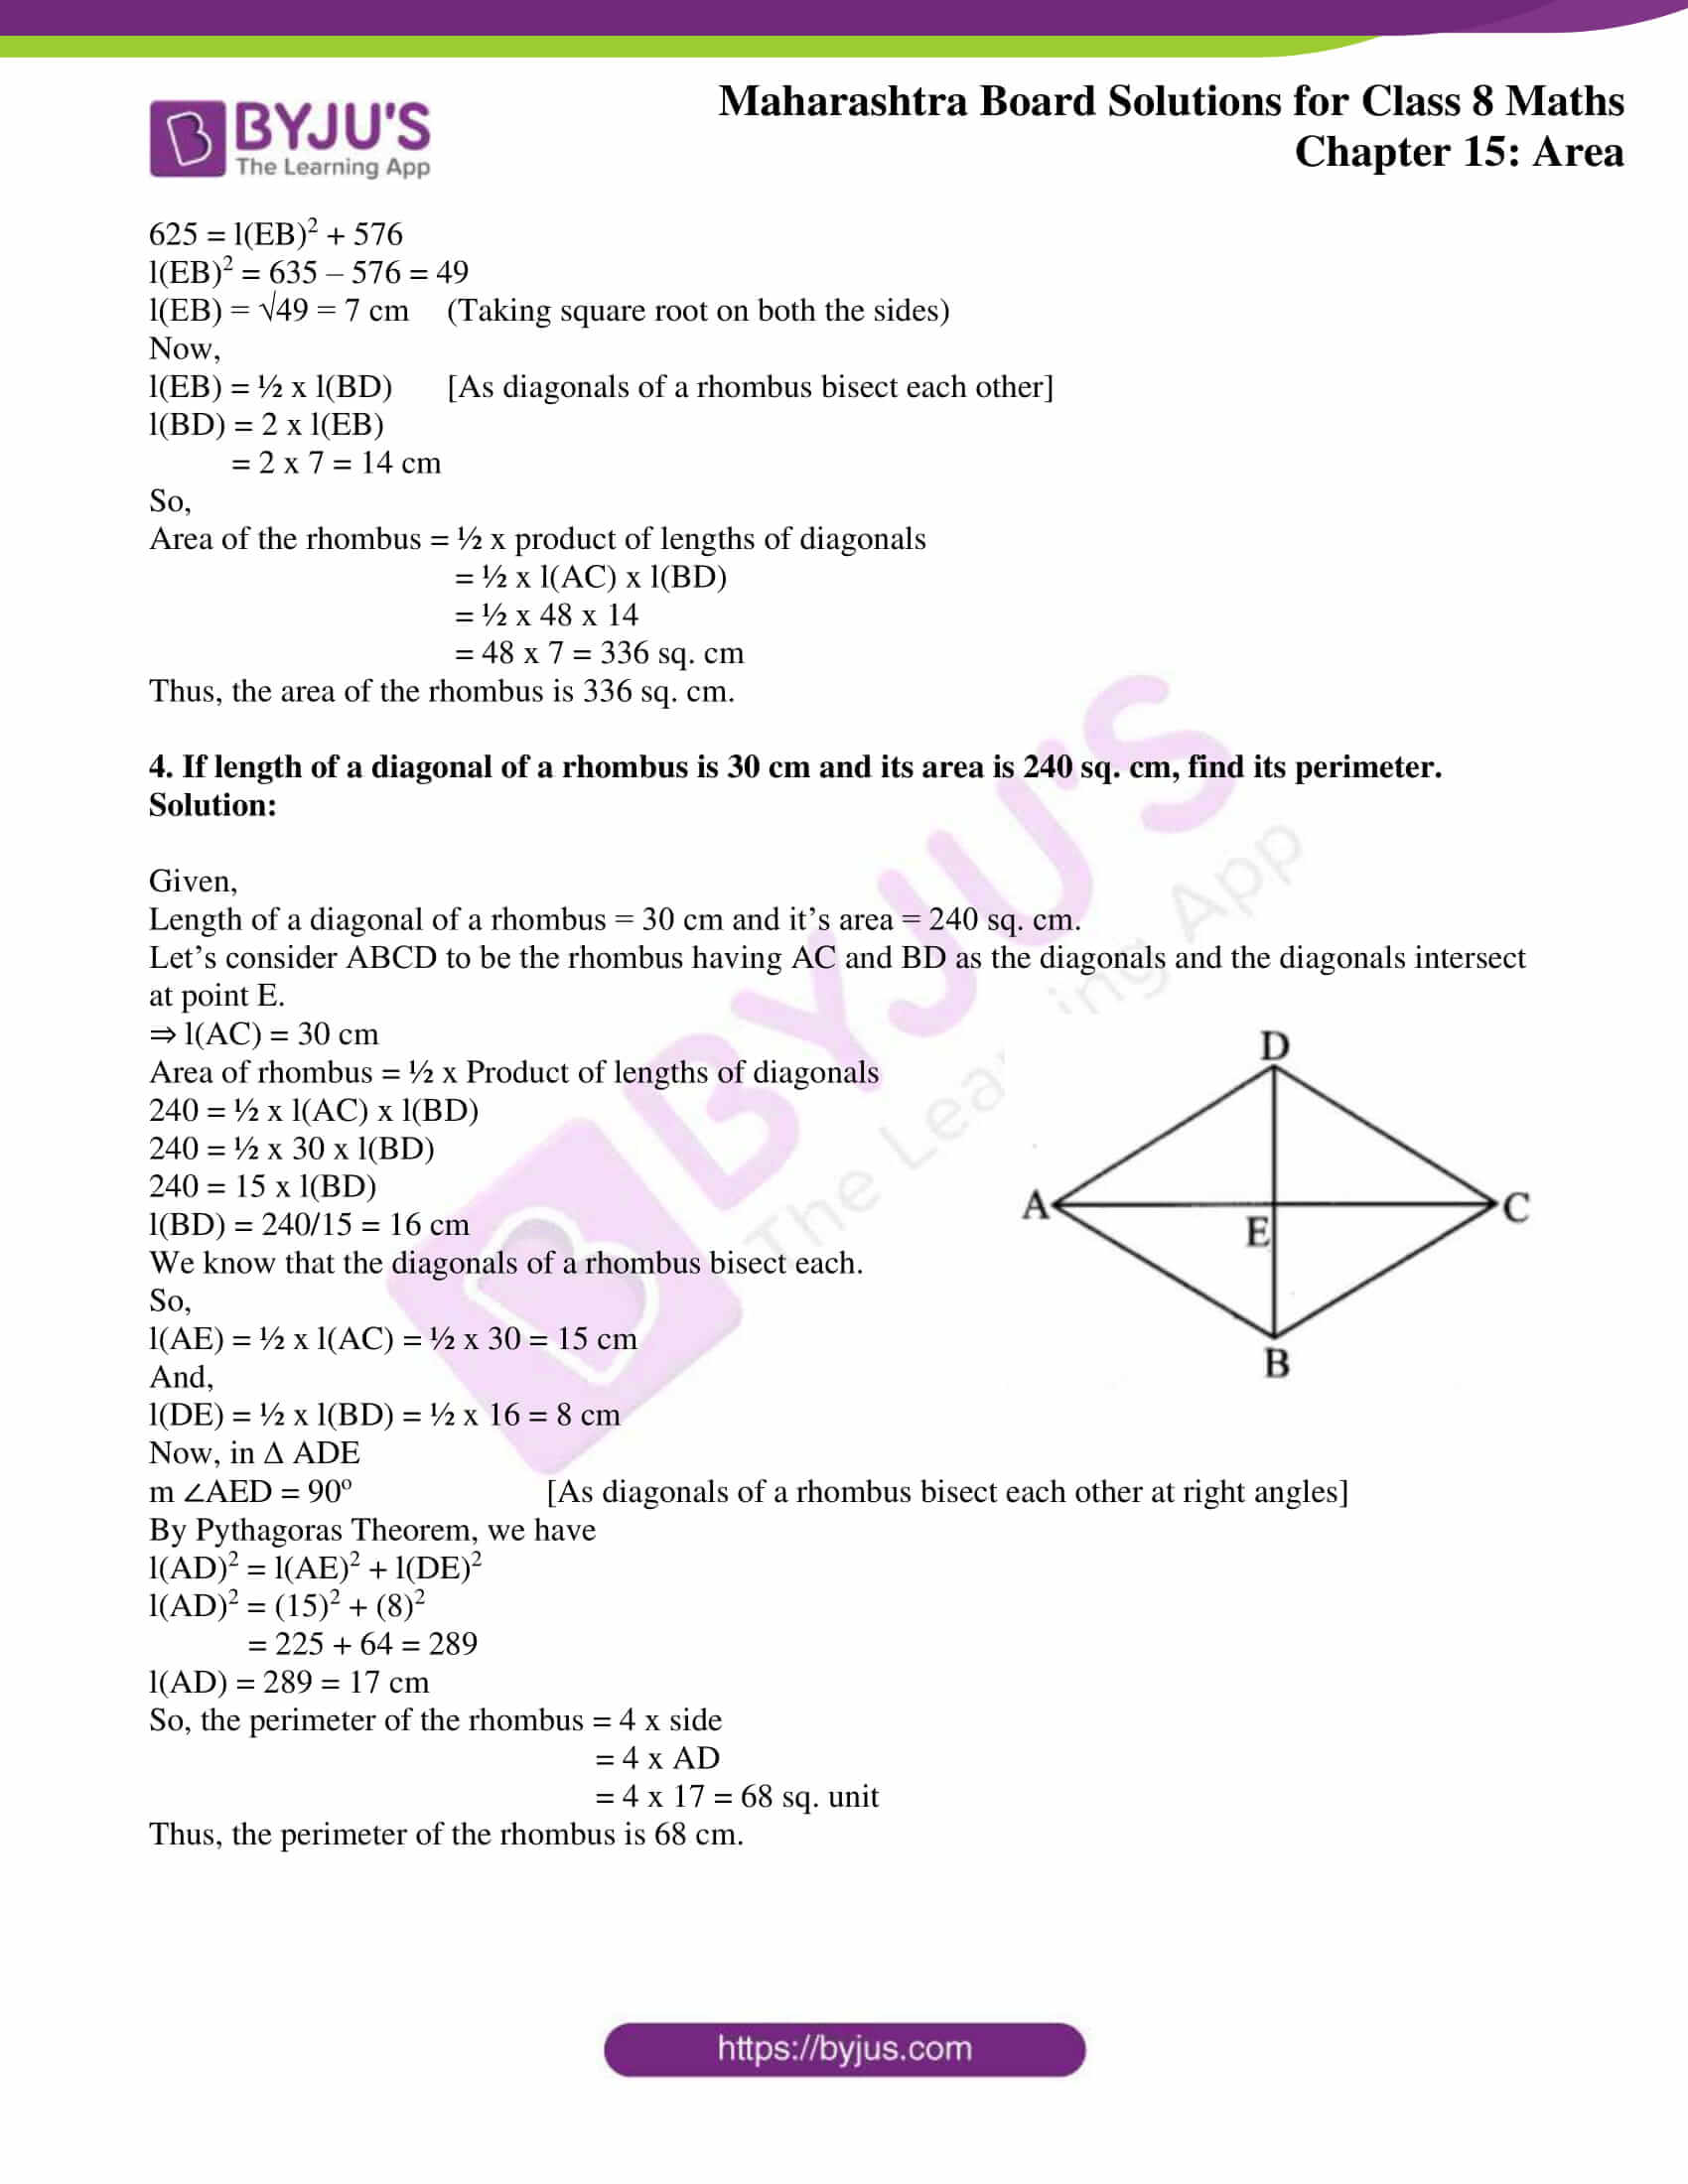 msbshse sol for class 8 maths chapter 15 03